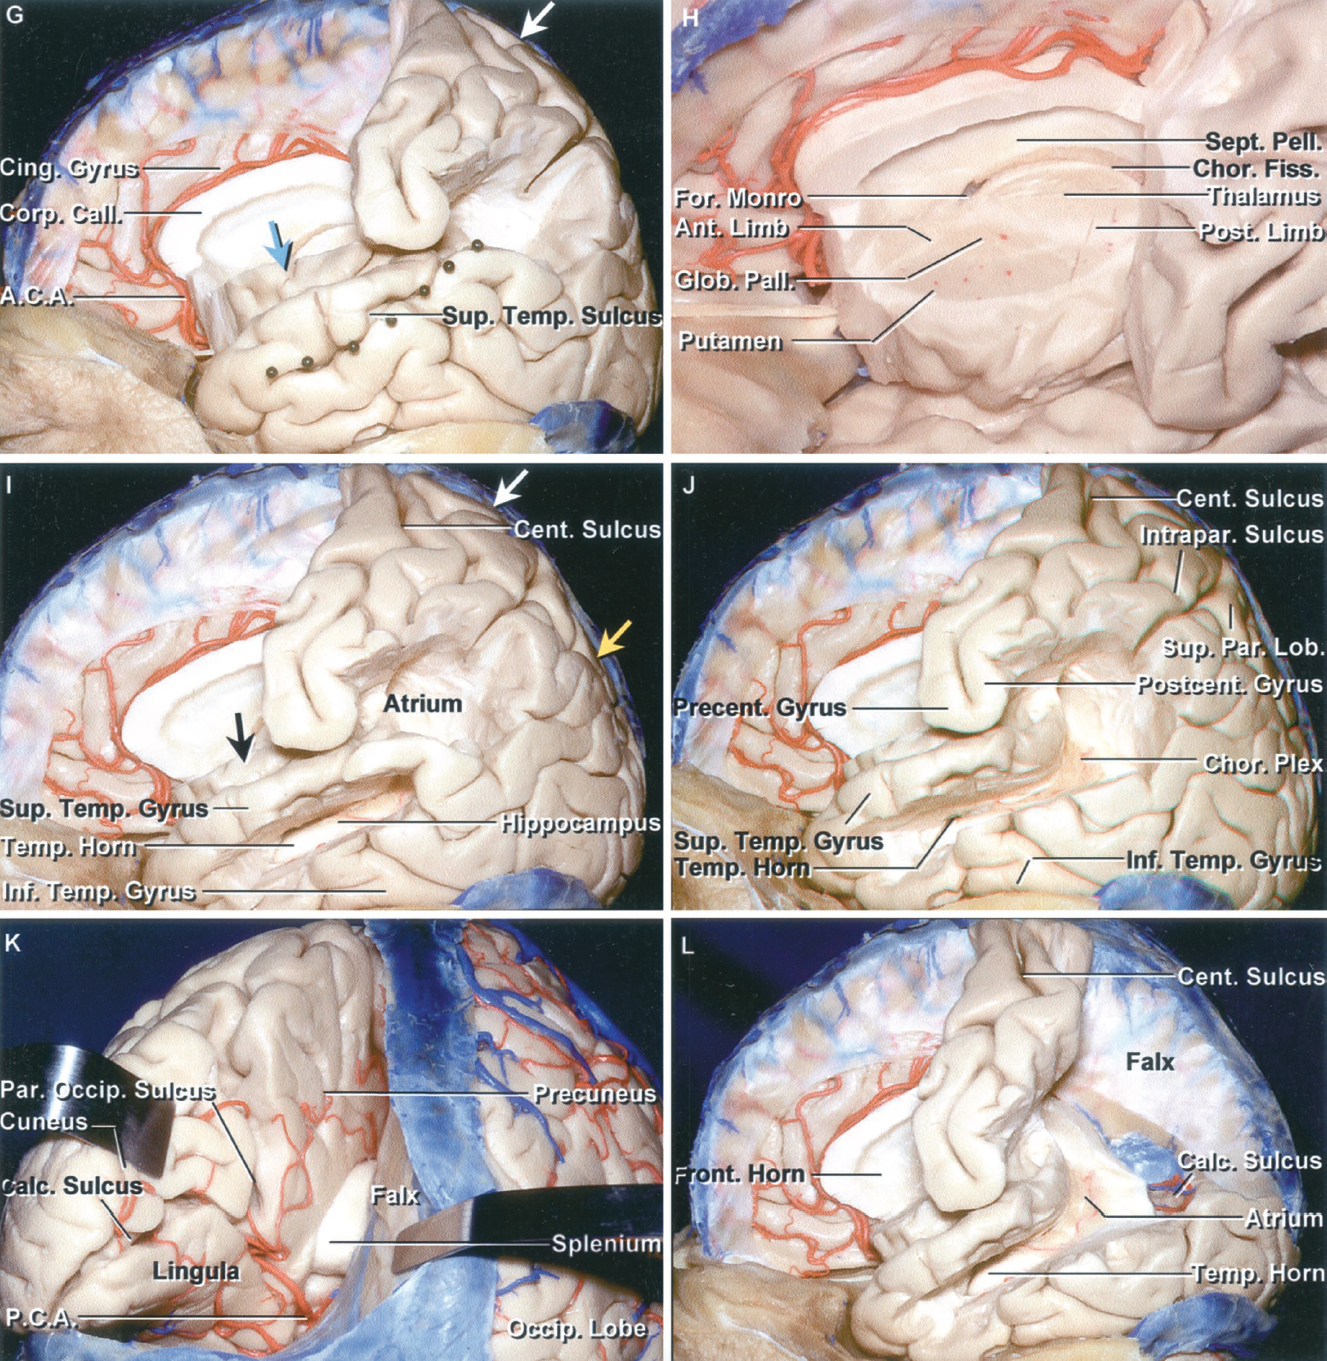 Figure 1.2 G-L. G, colored pins have been placed along a line that corresponds to the lower margin of the insula, which is located deep to the superior temporal sulcus. A blue arrow has been placed on the foramen of Monro, which is located deep to the central part of the insula. The white arrow is located at the site where the upper end of the ascending ramus of the cingulate sulcus reaches the superior hemispheric border. The ascending ramus courses on the medial surface along the posterior margin of the paracentral lobule. H, the anterior limb of the internal capsule is located between the lentiform nucleus, formed by the putamen and globus pallidus, and the caudate nucleus. The posterior limb is located between the thalamus and lentiform nucleus. The genu of the internal capsule is located just lateral to the foramen of Monro. The choroidal fissure, along which the choroid plexus is attached, is situated between the fornix and thalamus. I, the temporal horn and hippocampus are located medial to the middle temporal gyrus, a segment of which has been removed. The hippocampus sits in the floor of the temporal horn. The atrium is deep to the supramarginal gyrus. The black arrow is on the foramen of Monro. The white arrow is located where the upper end of the ascending ramus of the cingulate sulcus reaches the superior hemispheric border. The yellow arrow is where the upper end of the parieto-occipital sulcus reaches the superior border. J, the remaining bridge of the superior temporal gyrus located superficial to the junction of the atrium and temporal horn has been removed. K, posterior view of the left hemisphere. The splenium is located deep in the interhemispheric fissure. The parieto-occipital and calcarine sulcus converge behind the splenium to give the medial surface a Y shaped configuration. The parieto-occipital sulcus separates the precuneus and cuneus, and the calcarine sulcus separates the cuneus and lingula. L, the parietal lobe, above the level of the calcarine sulcus, has been removed. The upper lip of the calcarine sulcus, formed by the cuneus, has been removed to expose the lingula that forms the lower bank of the calcarine sulcus. The calcar avis is a prominence in the lower part of the medial atrial wall overlying the calcarine sulcus.